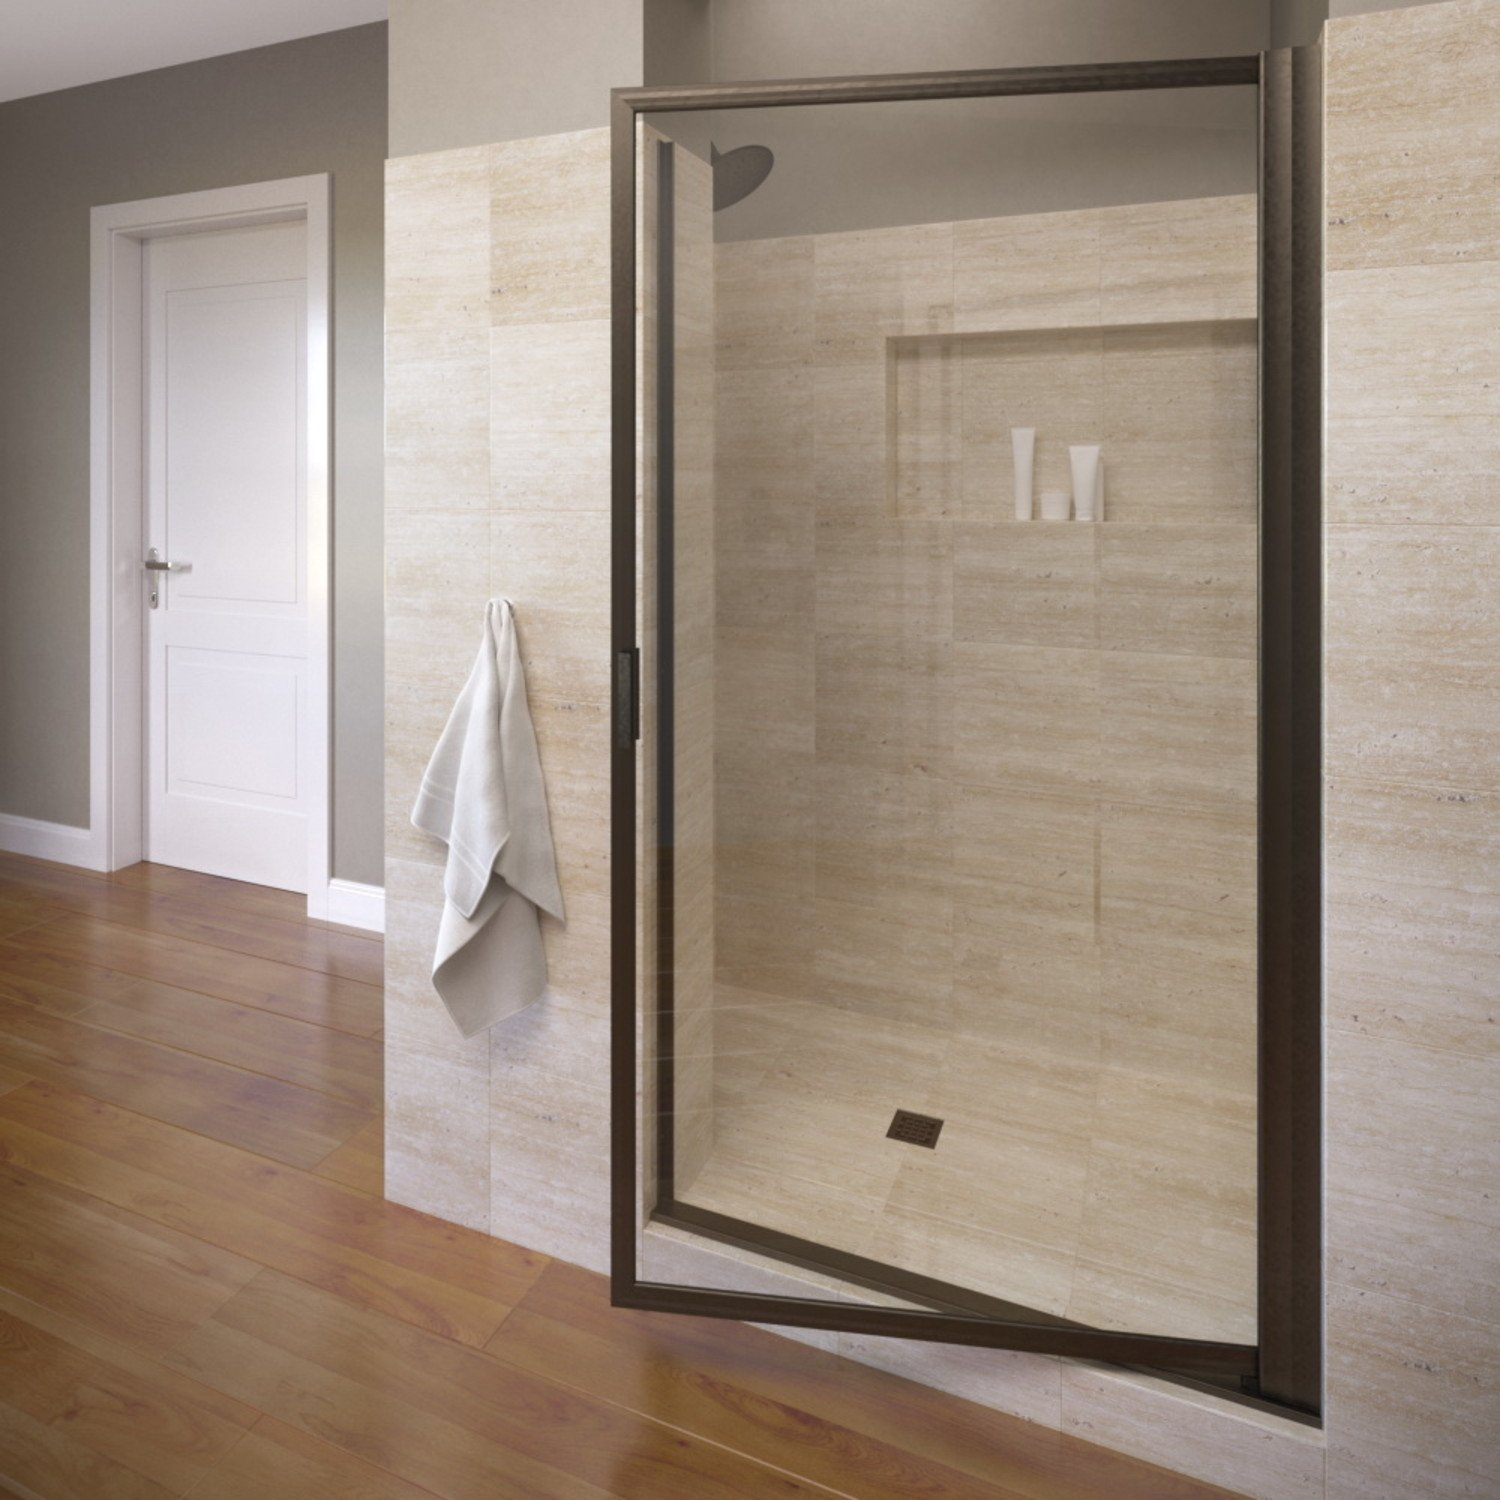 Basco Deluxe 27.25- 29 in. Width, Glass Shower Door, Clear Glass, Oil Rubbed Bronze Finish